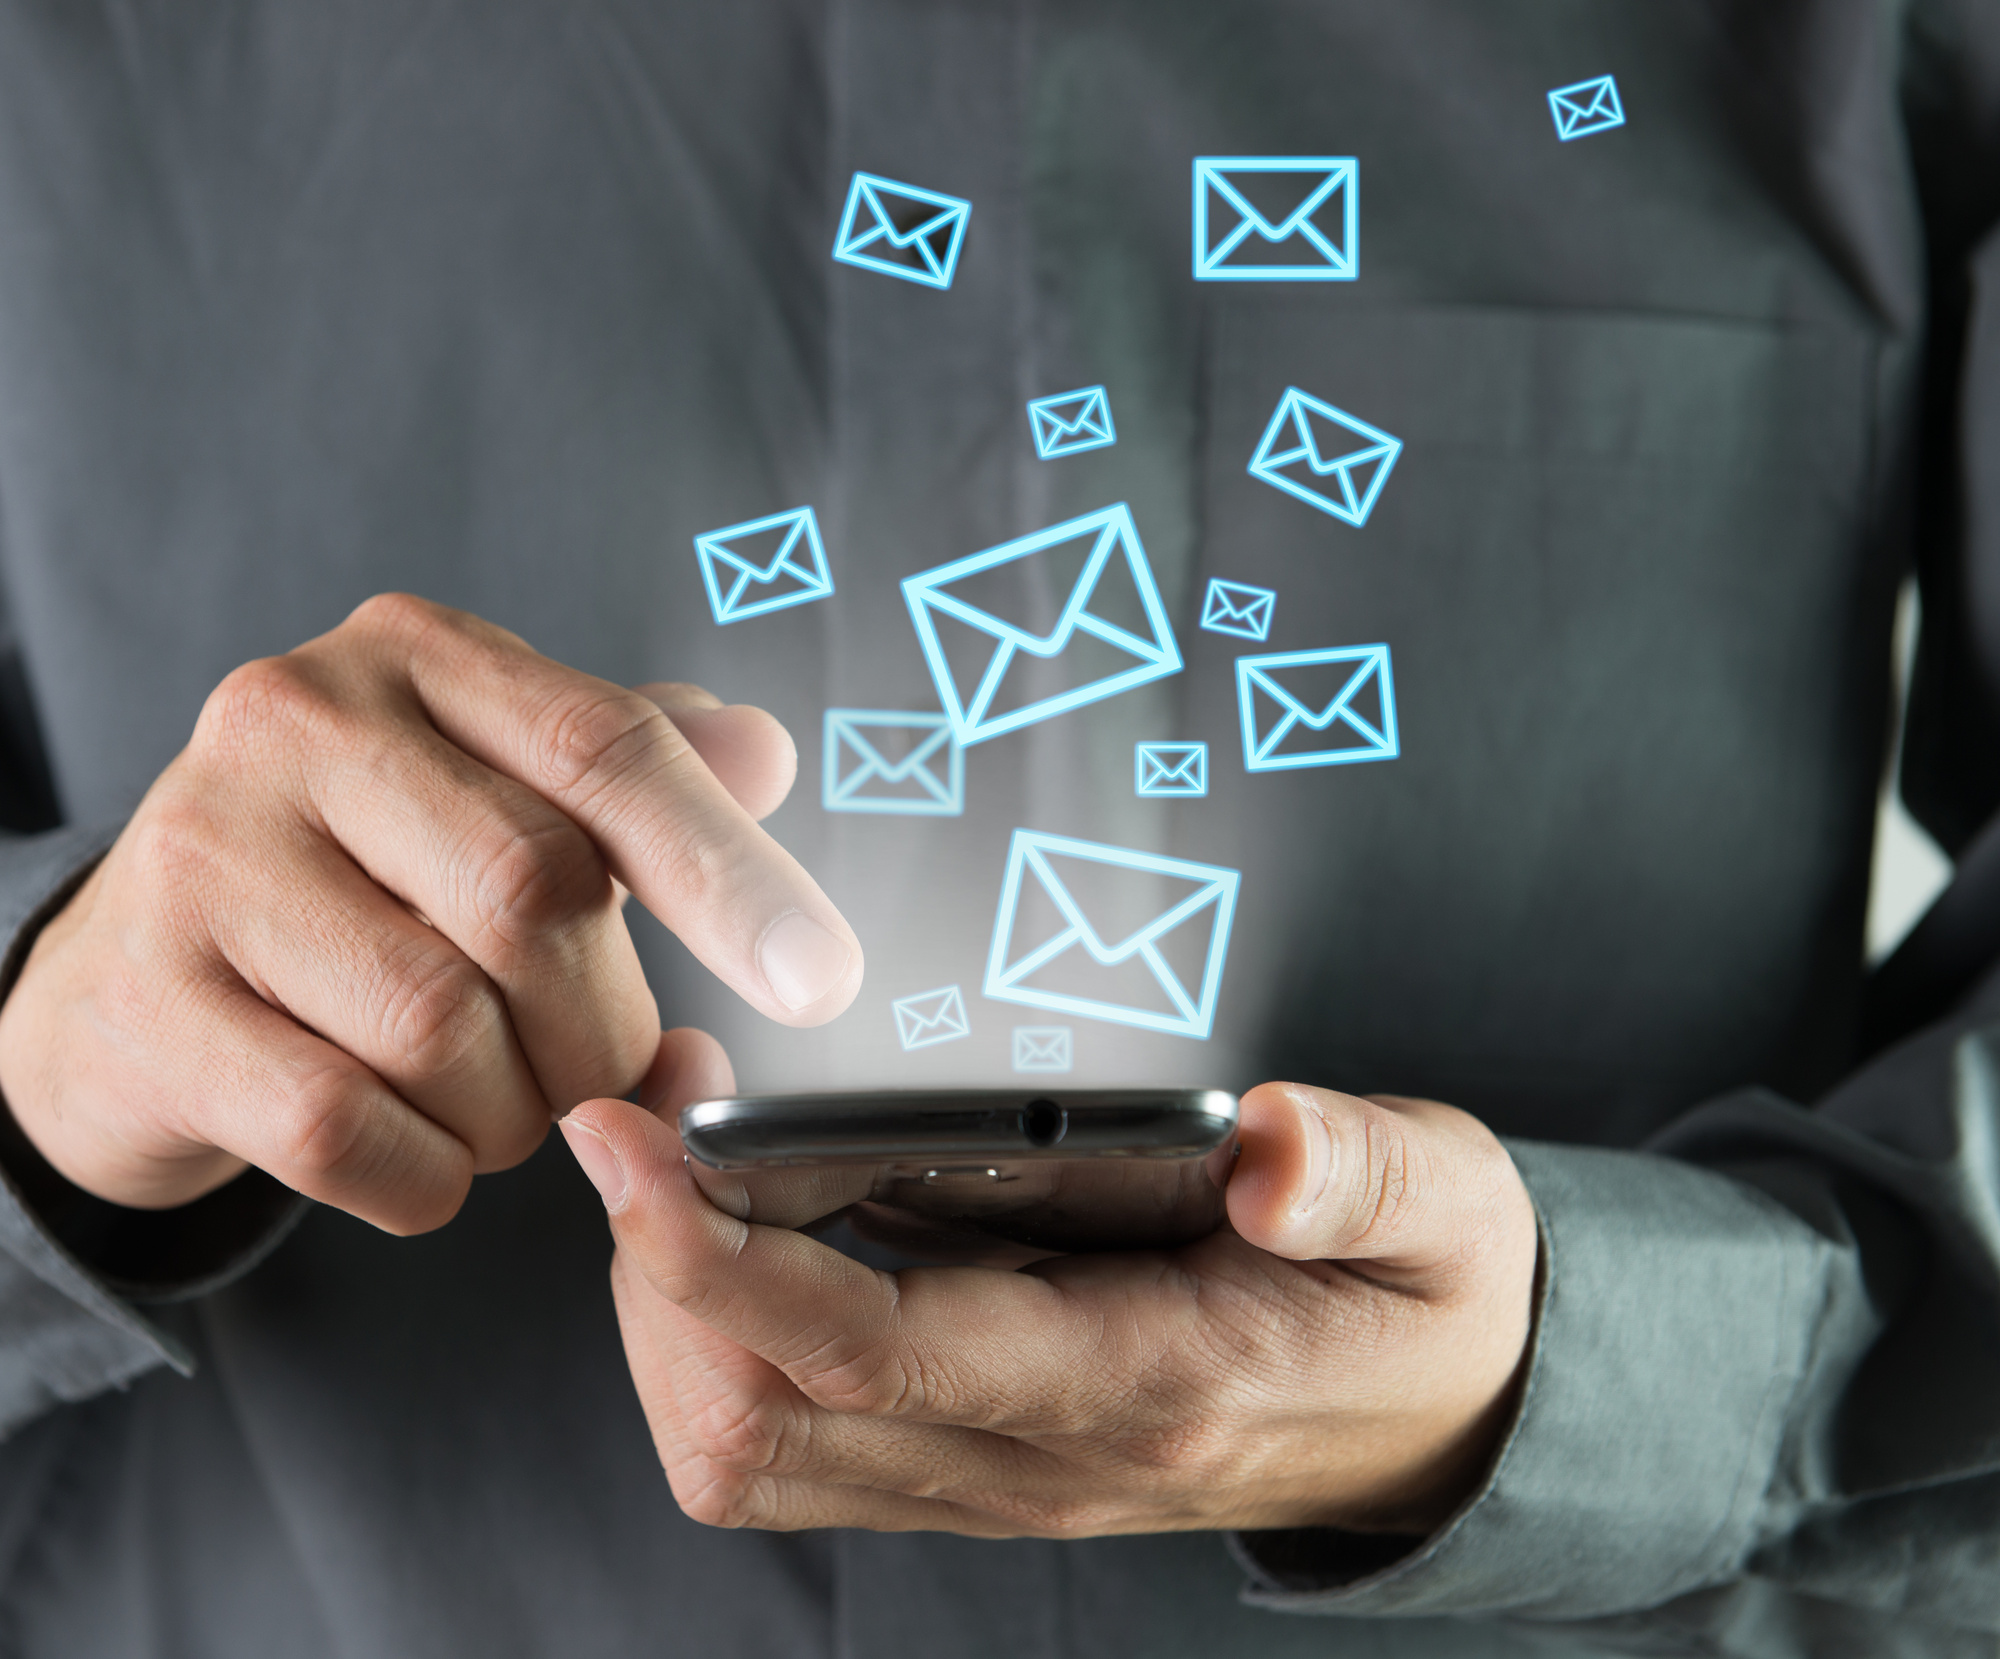 email icons and person with mobile phone